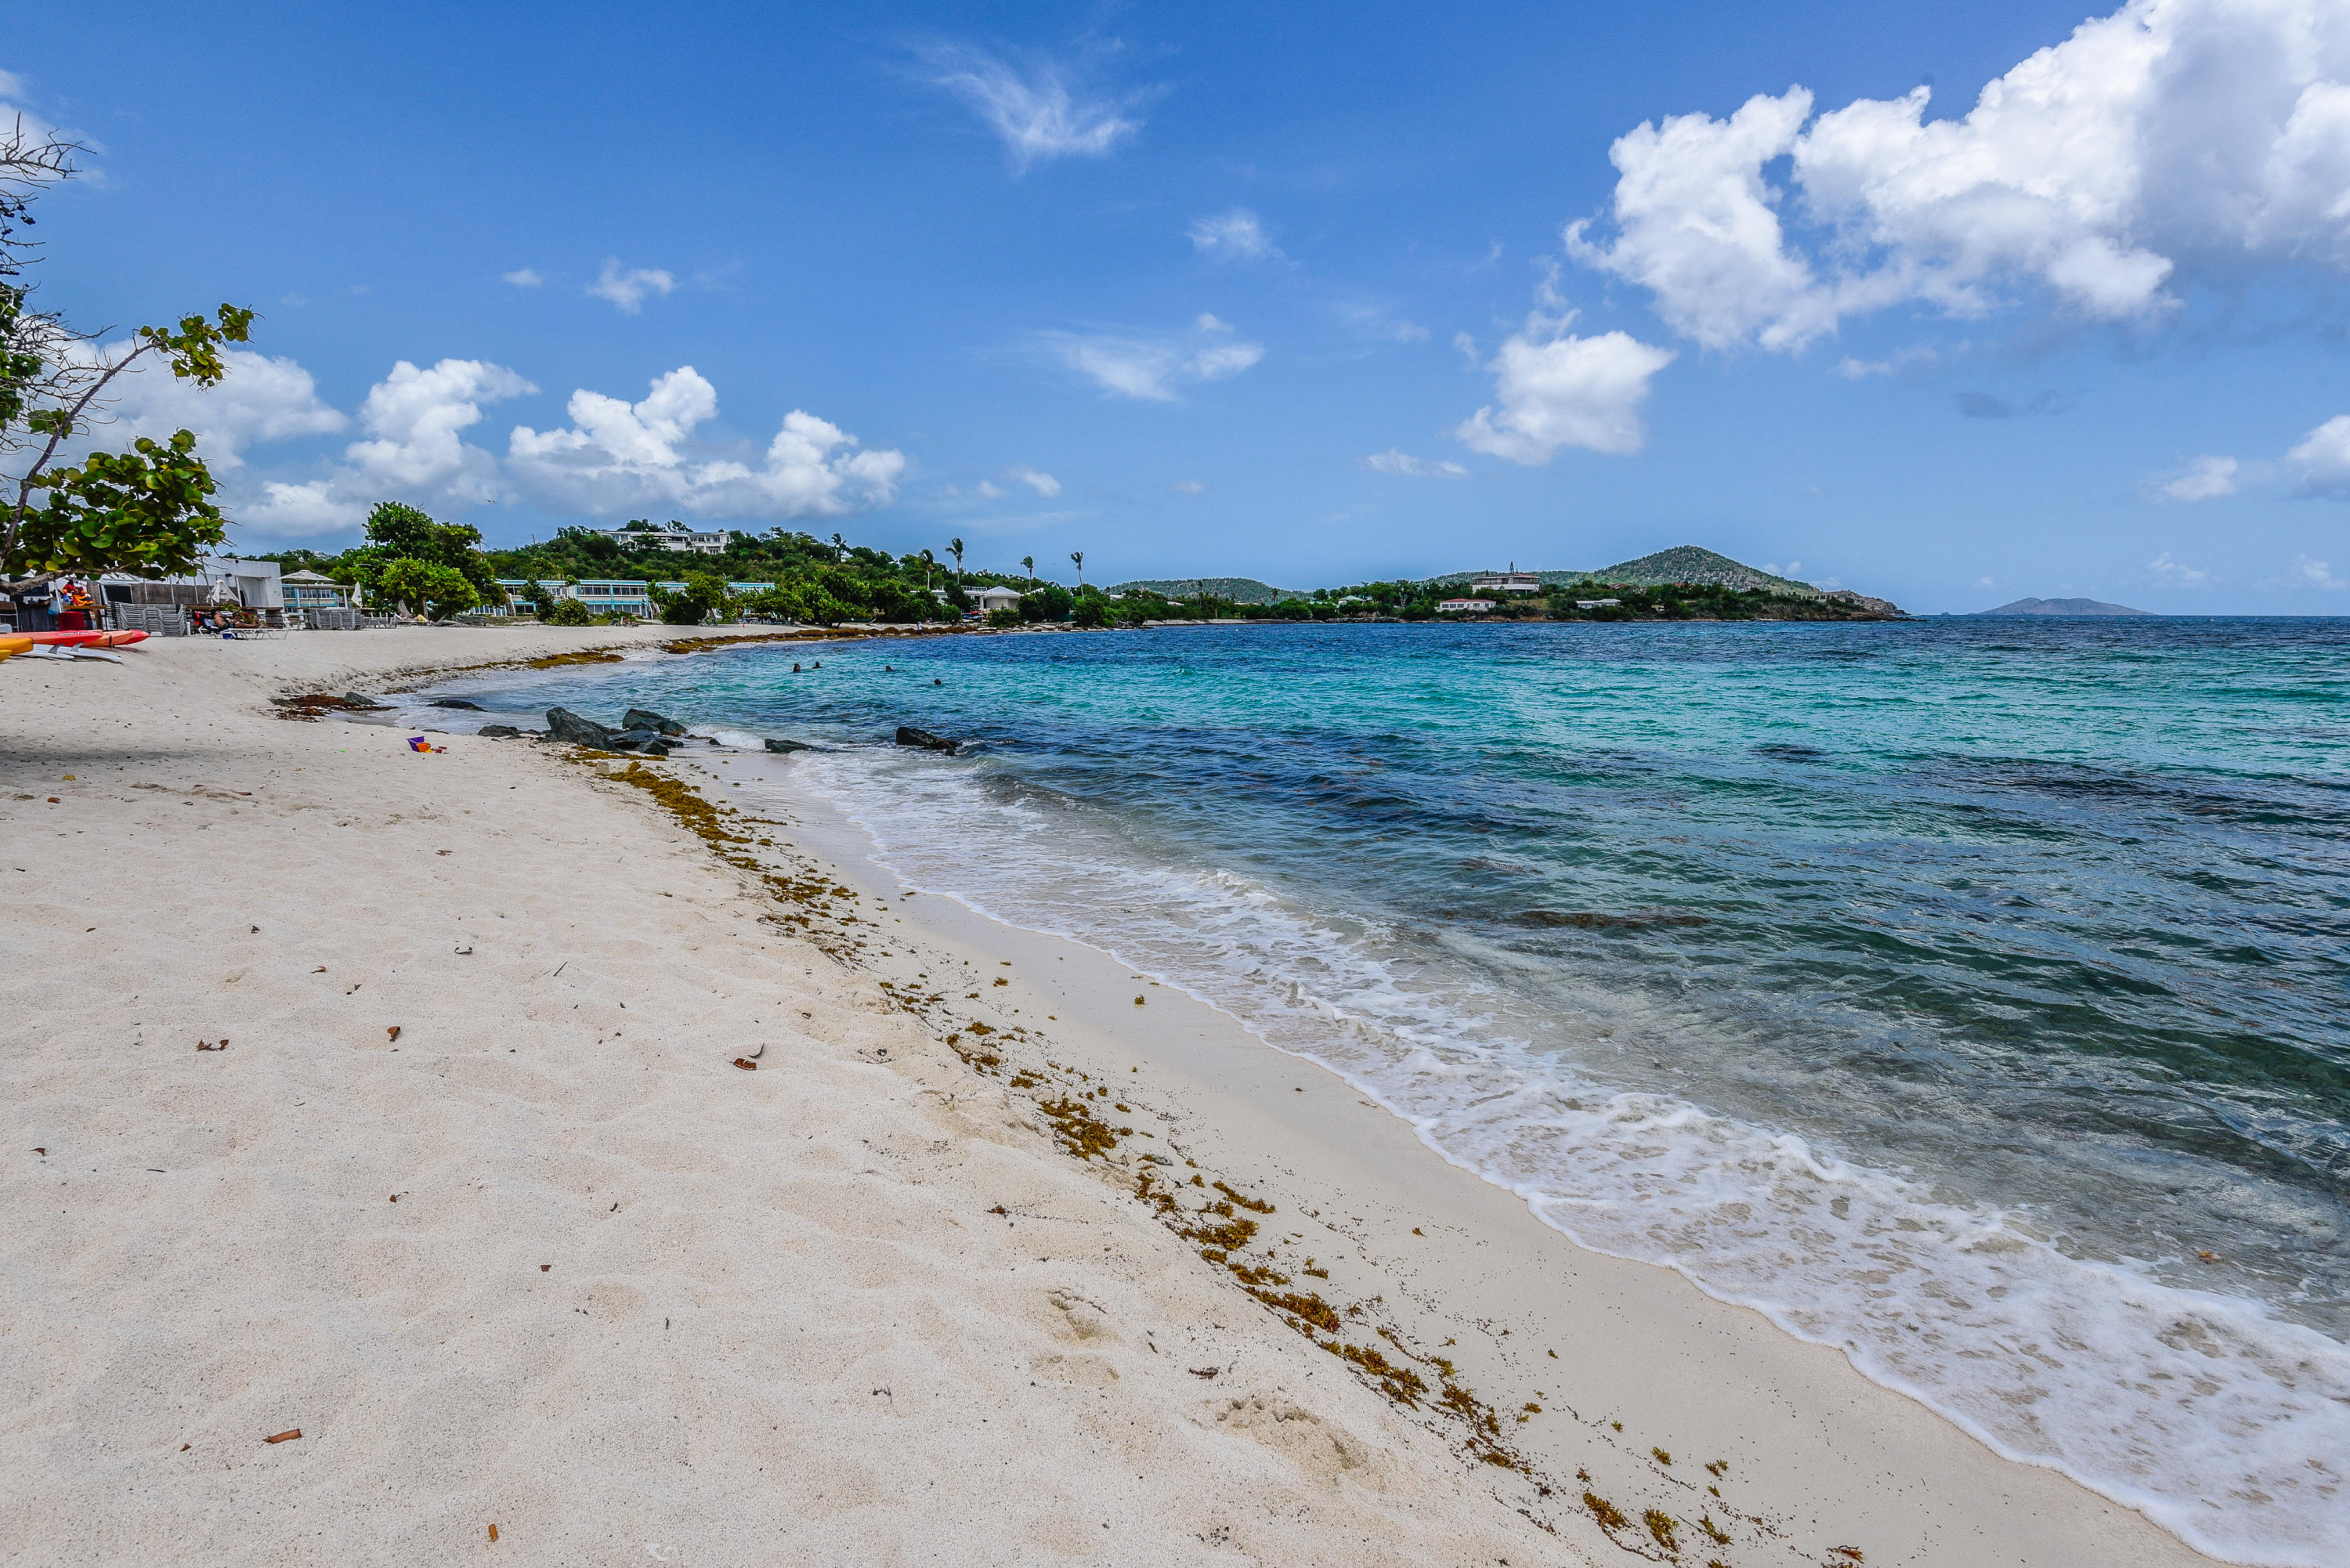 Additional photo for property listing at Sapphire Beach Resort & Marina 109 Smith Bay EE Sapphire Beach Resort & Marina 109 Smith Bay EE St Thomas, Virgin Islands 00802 United States Virgin Islands